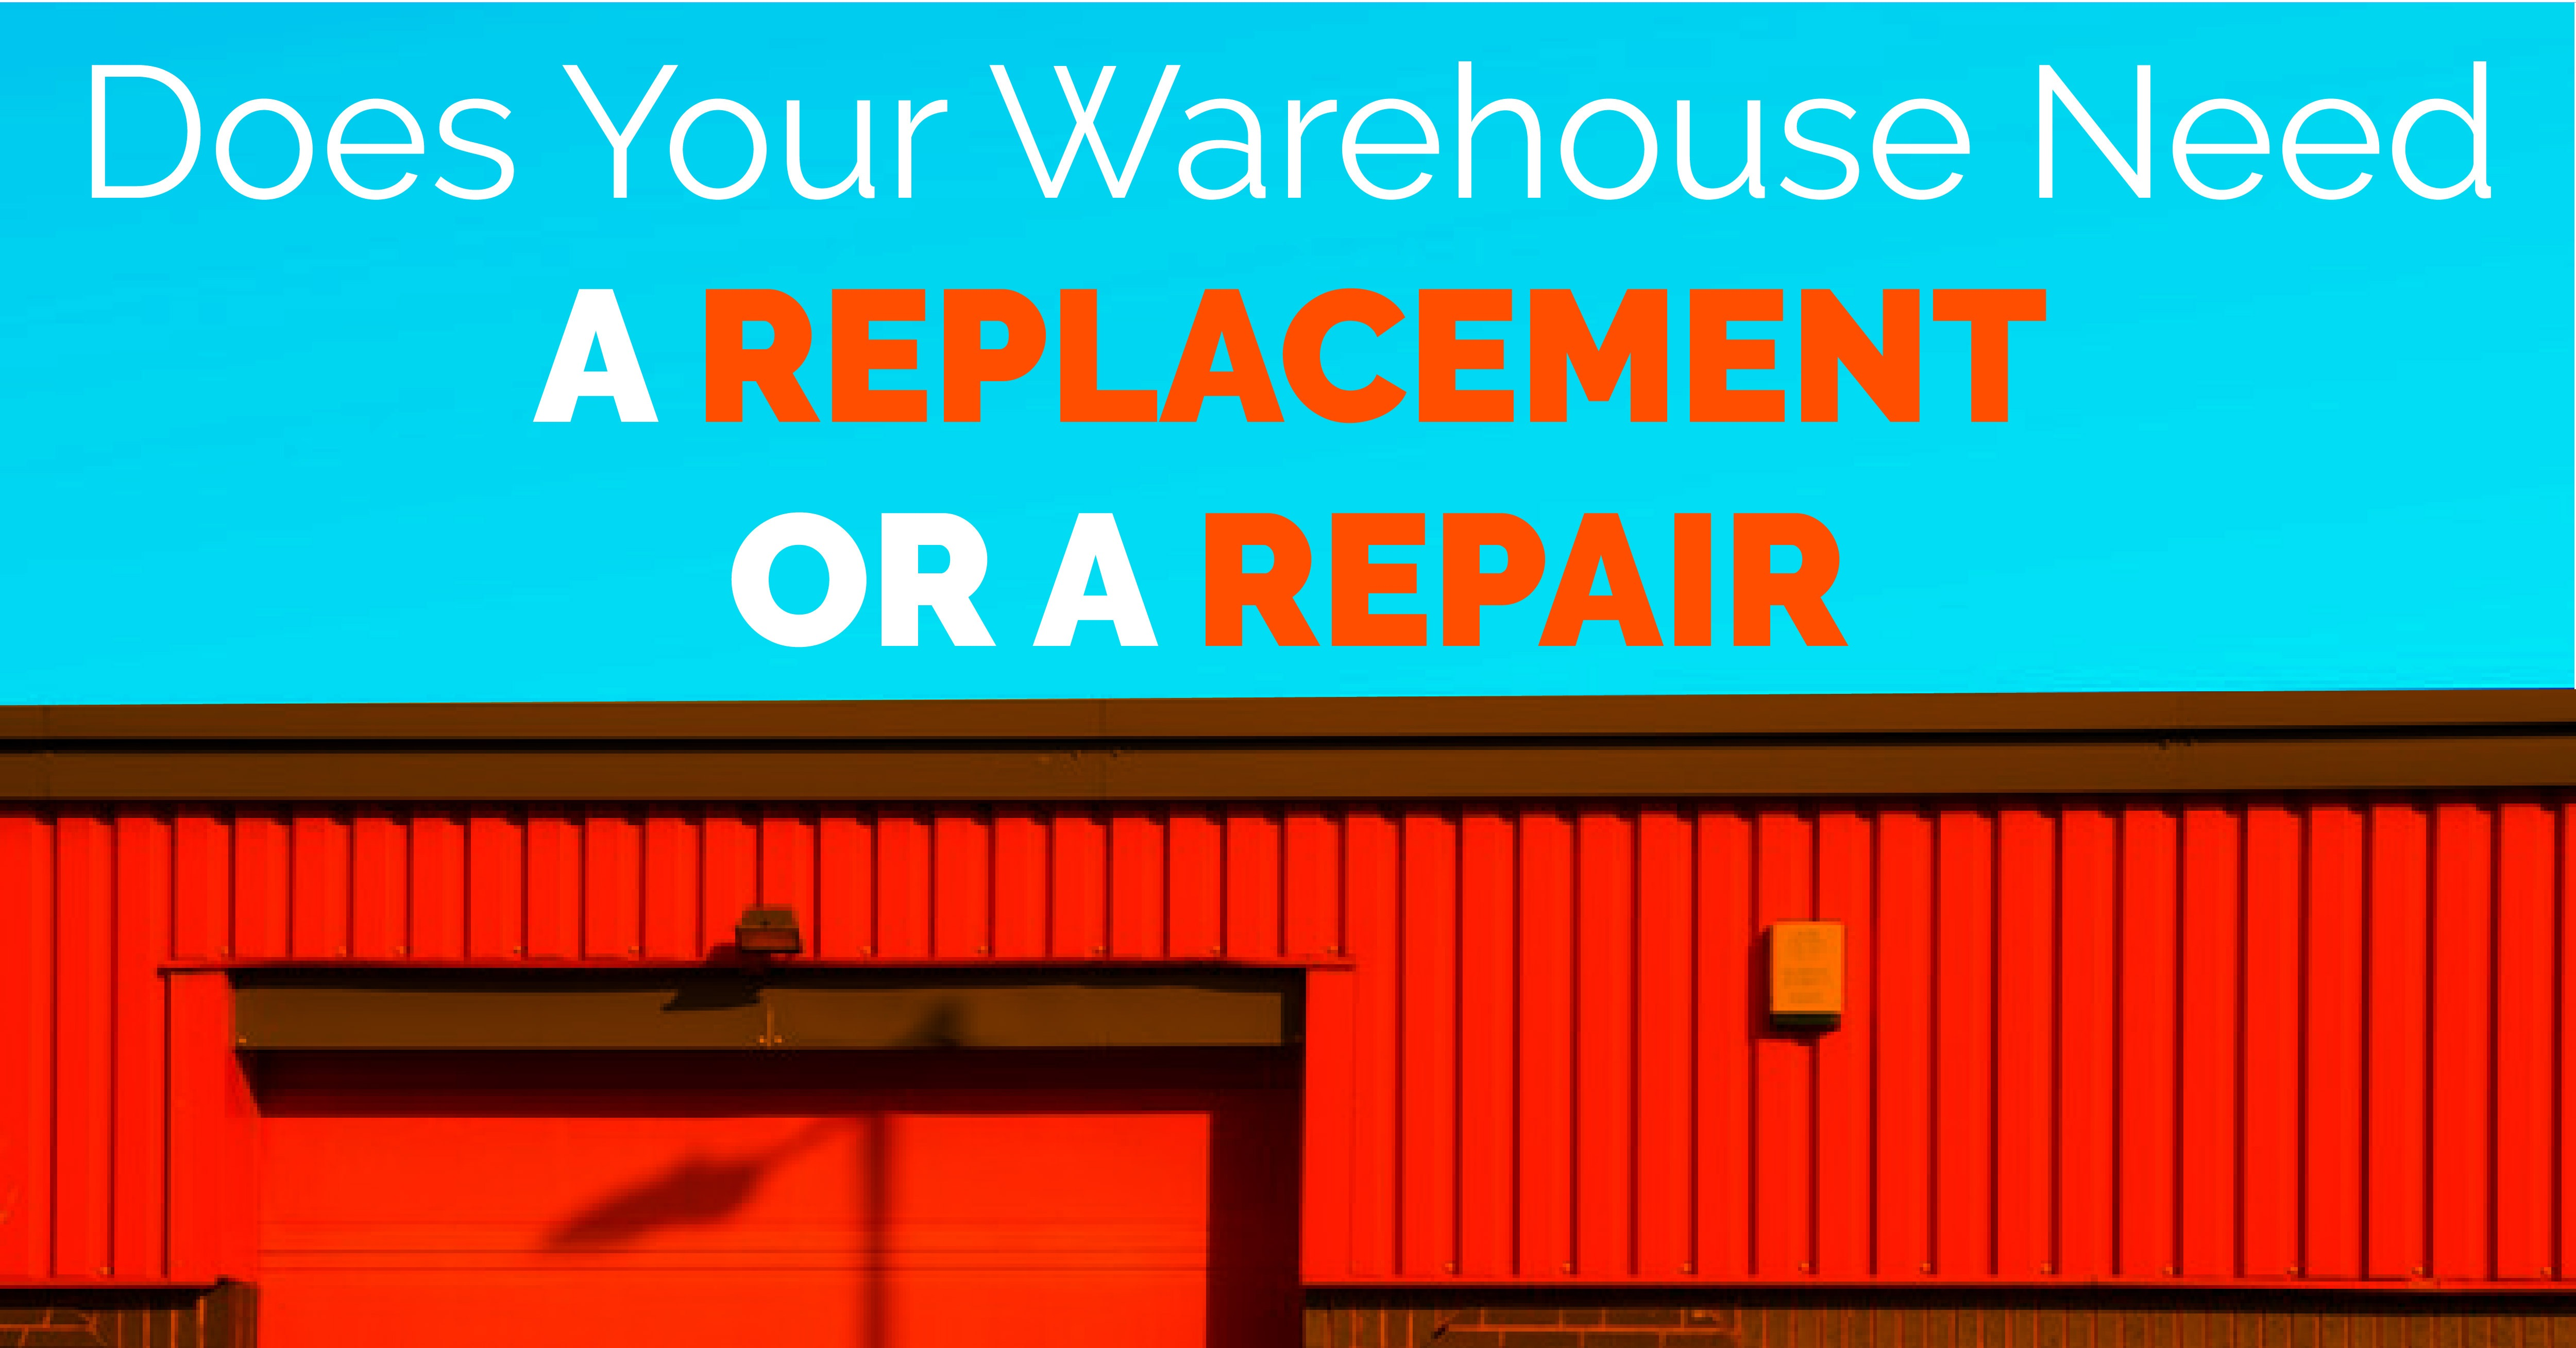 Does Your Warehouse Need A Roof Replacement Or A Repair?